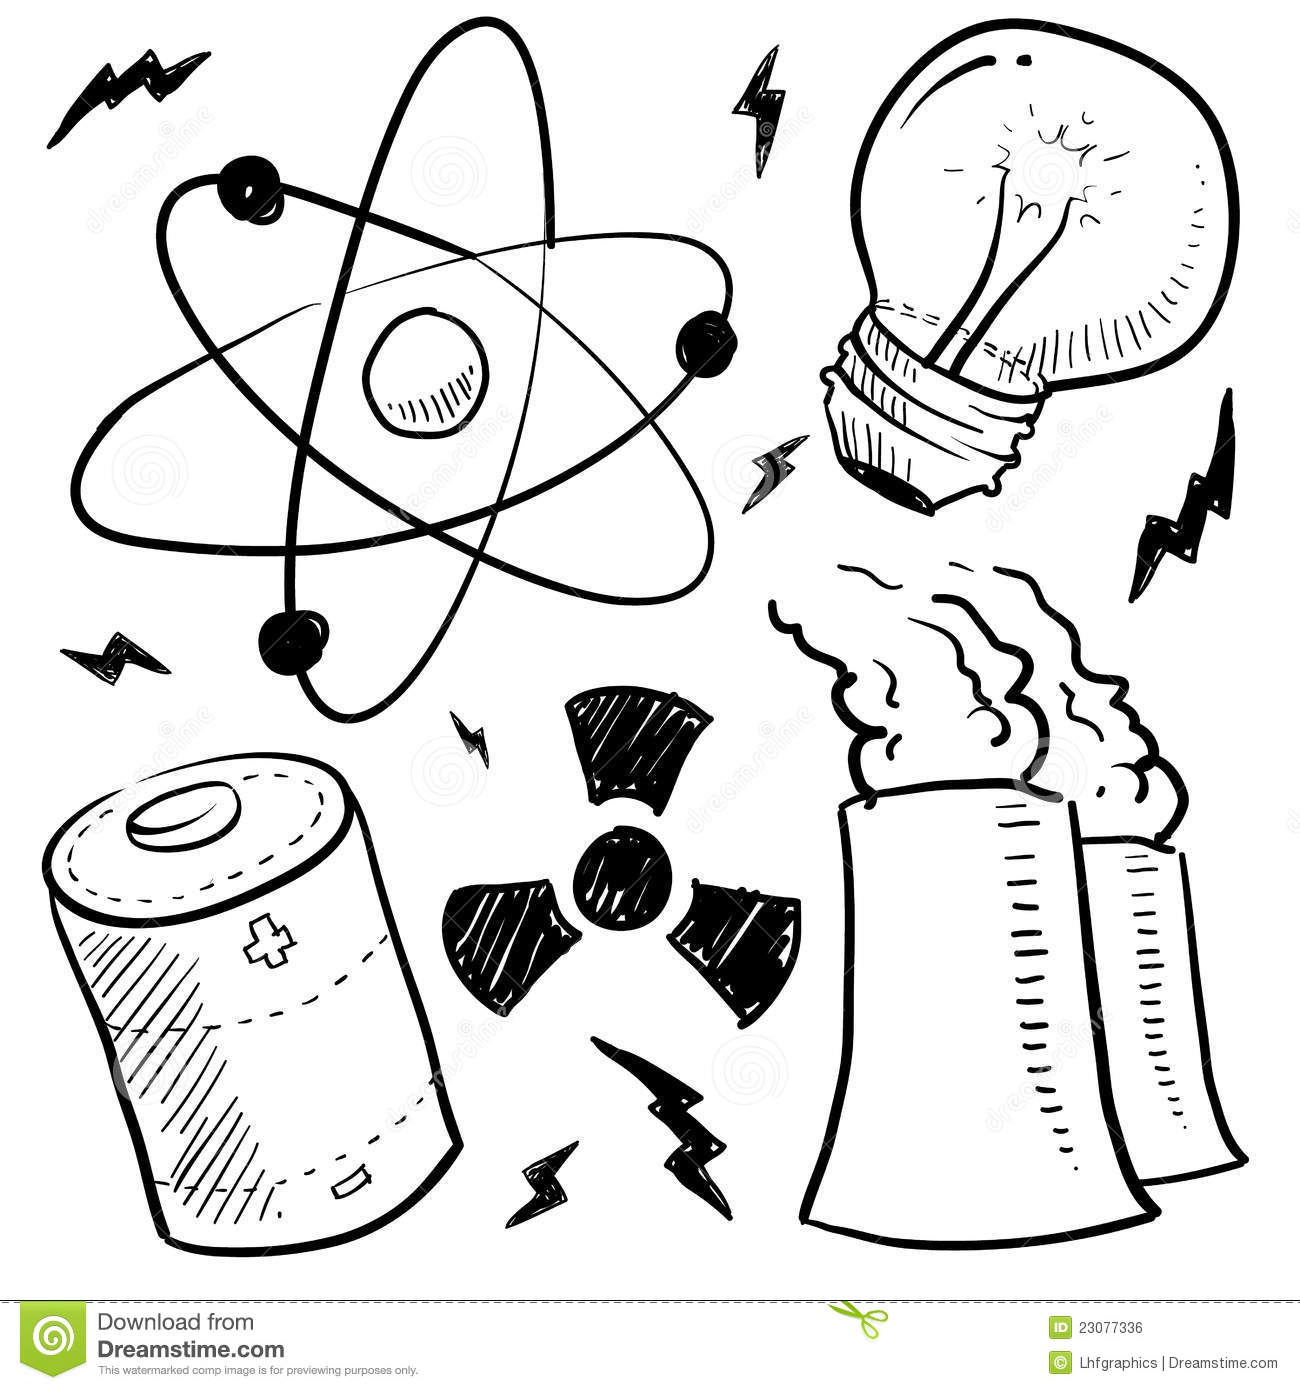 Nuclear Power Objects Sketch Royalty Free Stock Image